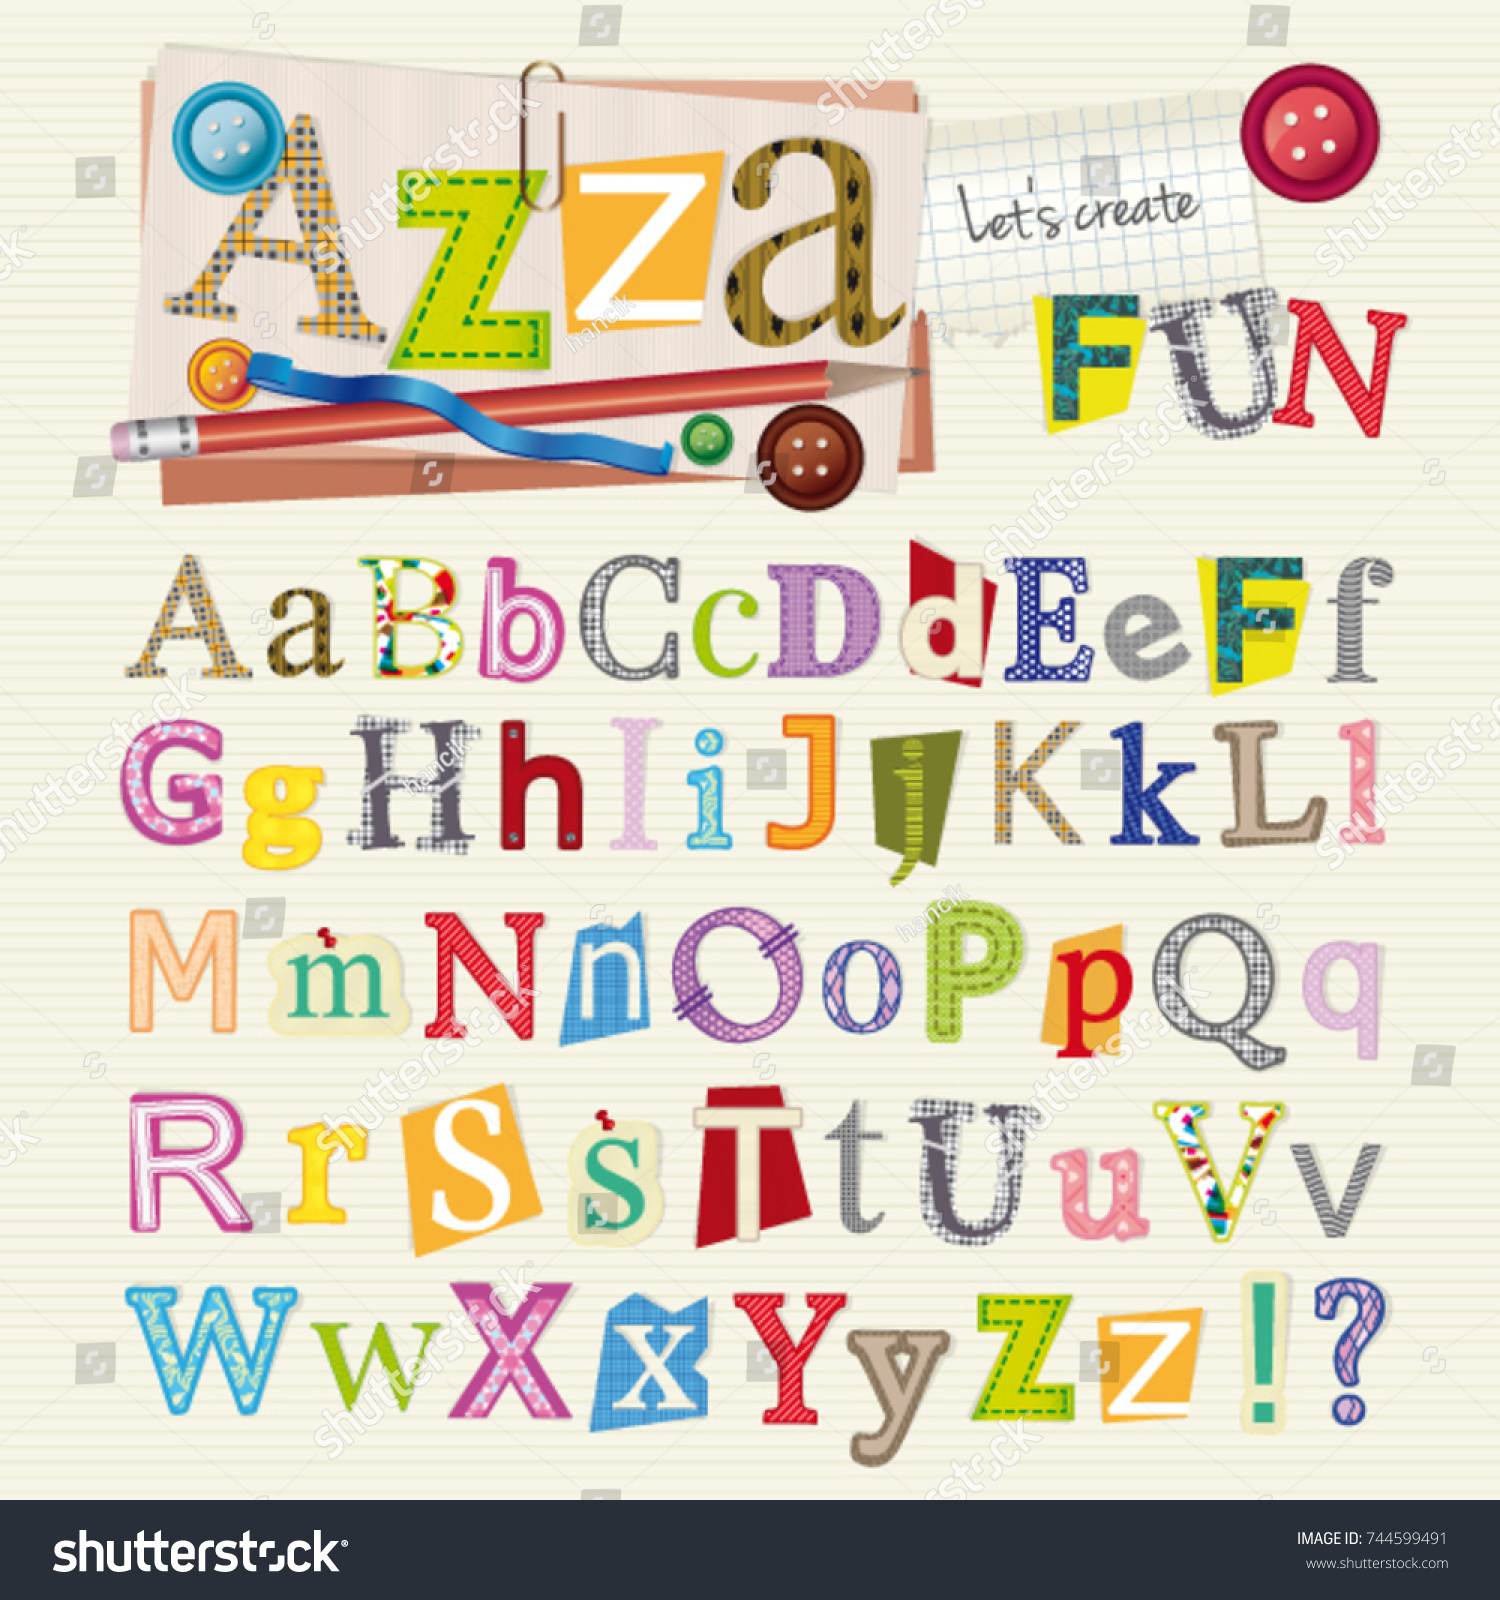 Set scrapbook letters elements alphabet original stock vector 744599491 shutterstock - Lettre alphabet original ...